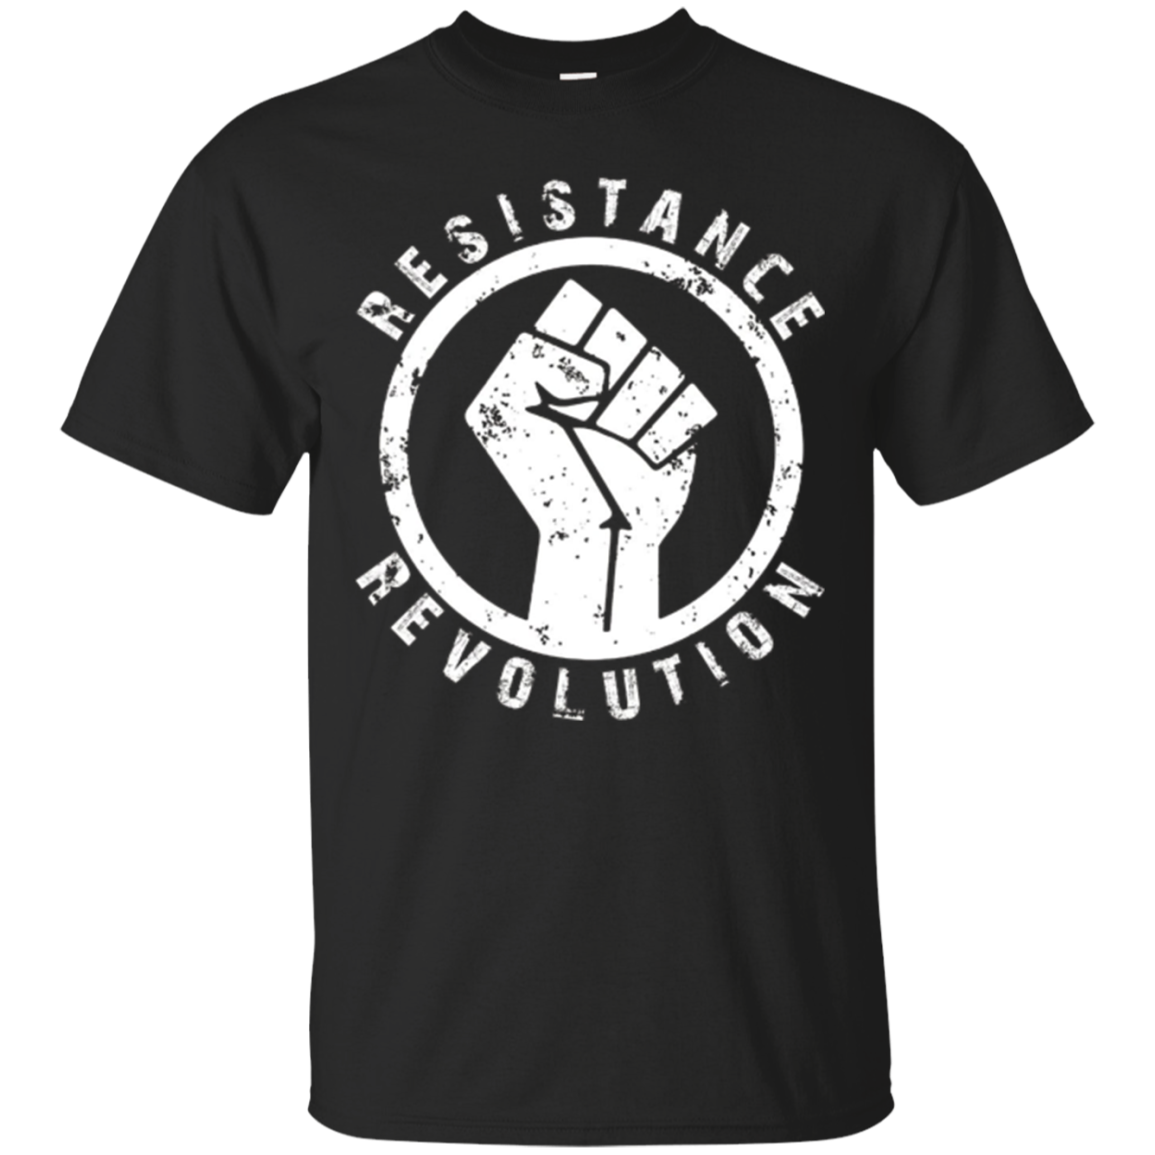 Resistance Revolution Civil Rights Black Power Fist T-Shirt